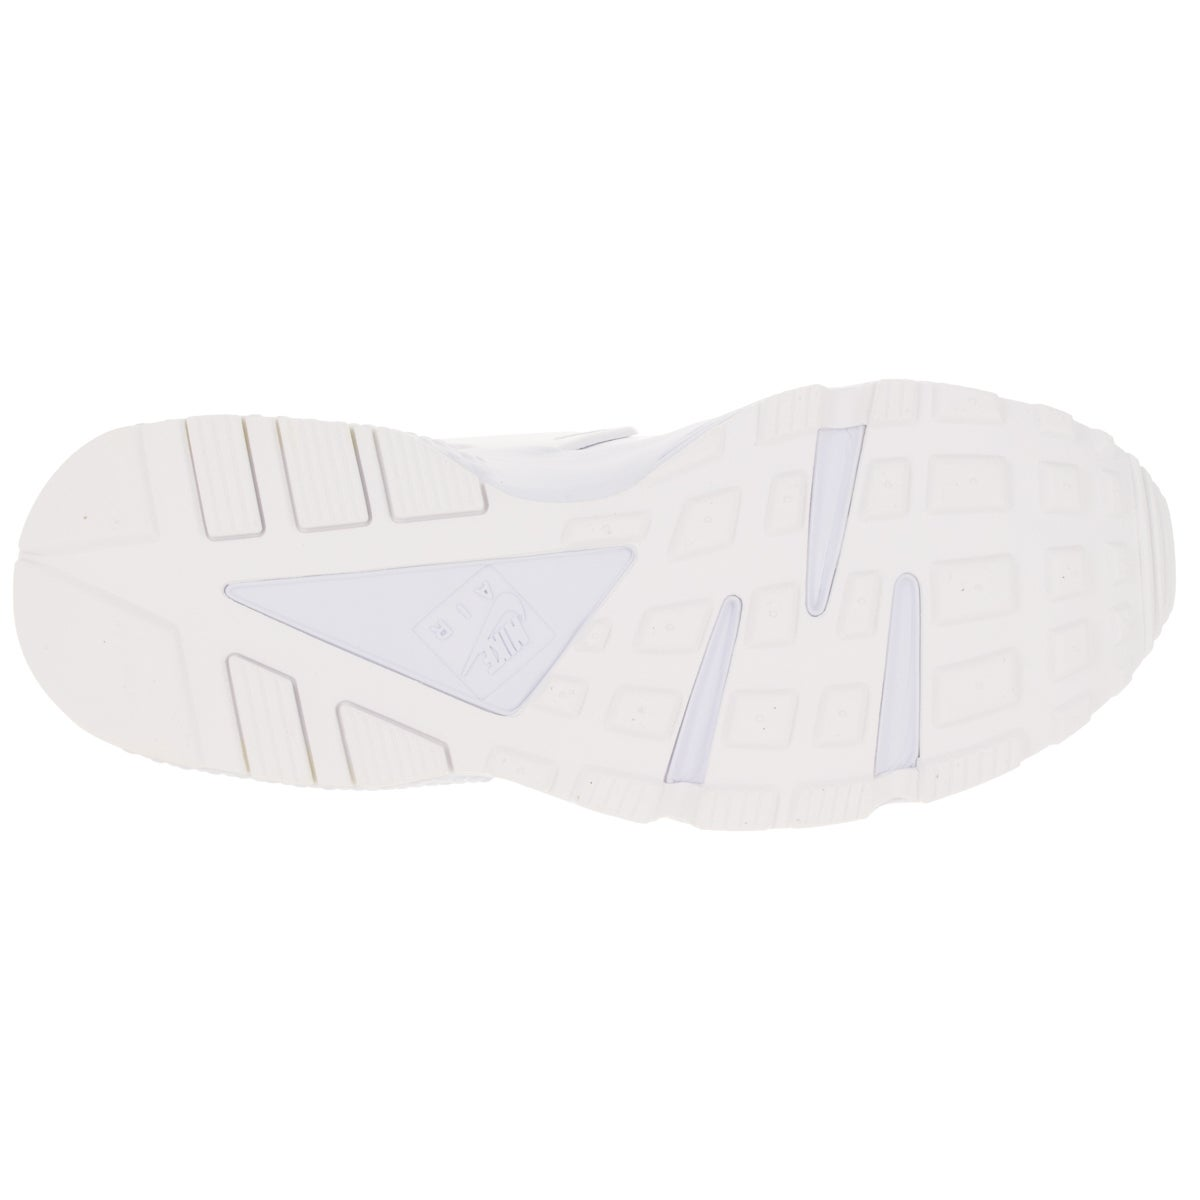 03a3cd71eaf19 Shop Nike Men's Air Huarache White/White/Pure Platinum Running Shoe - Free  Shipping Today - Overstock - 13395237